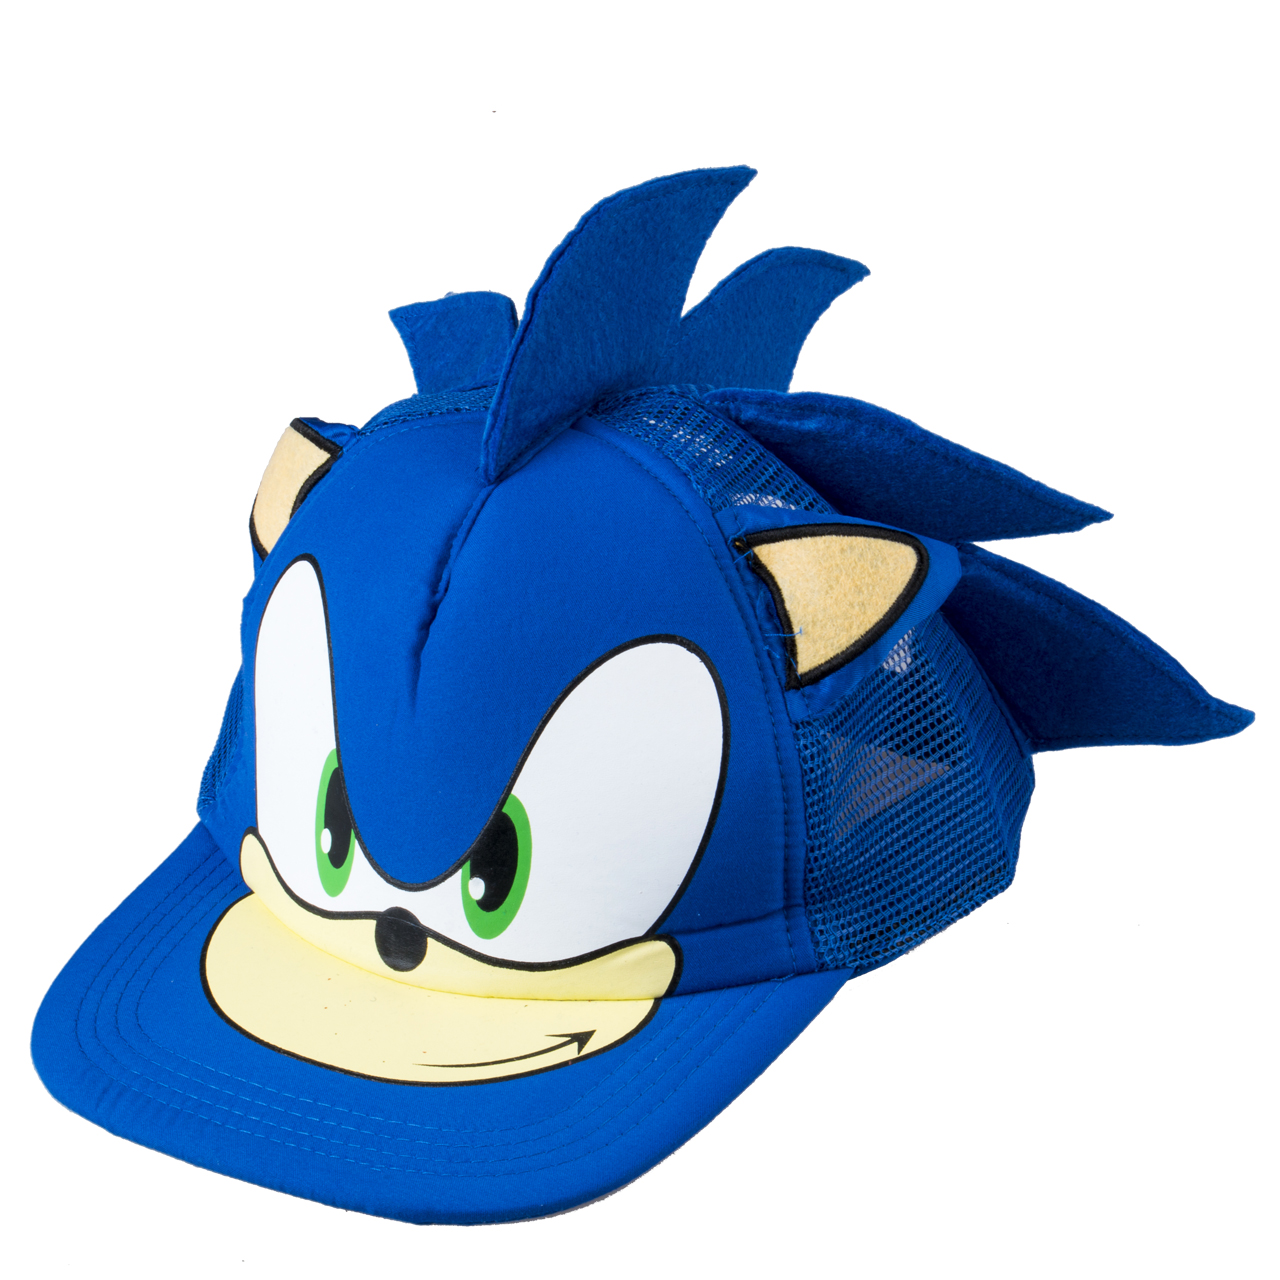 Cute Boy Sonic The Hedgehog Cartoon Youth Adjustable Baseball Hat Cap Blue For Boys Hot Selling Cap Kids Gift Cosplay Kleidung & Accessoires